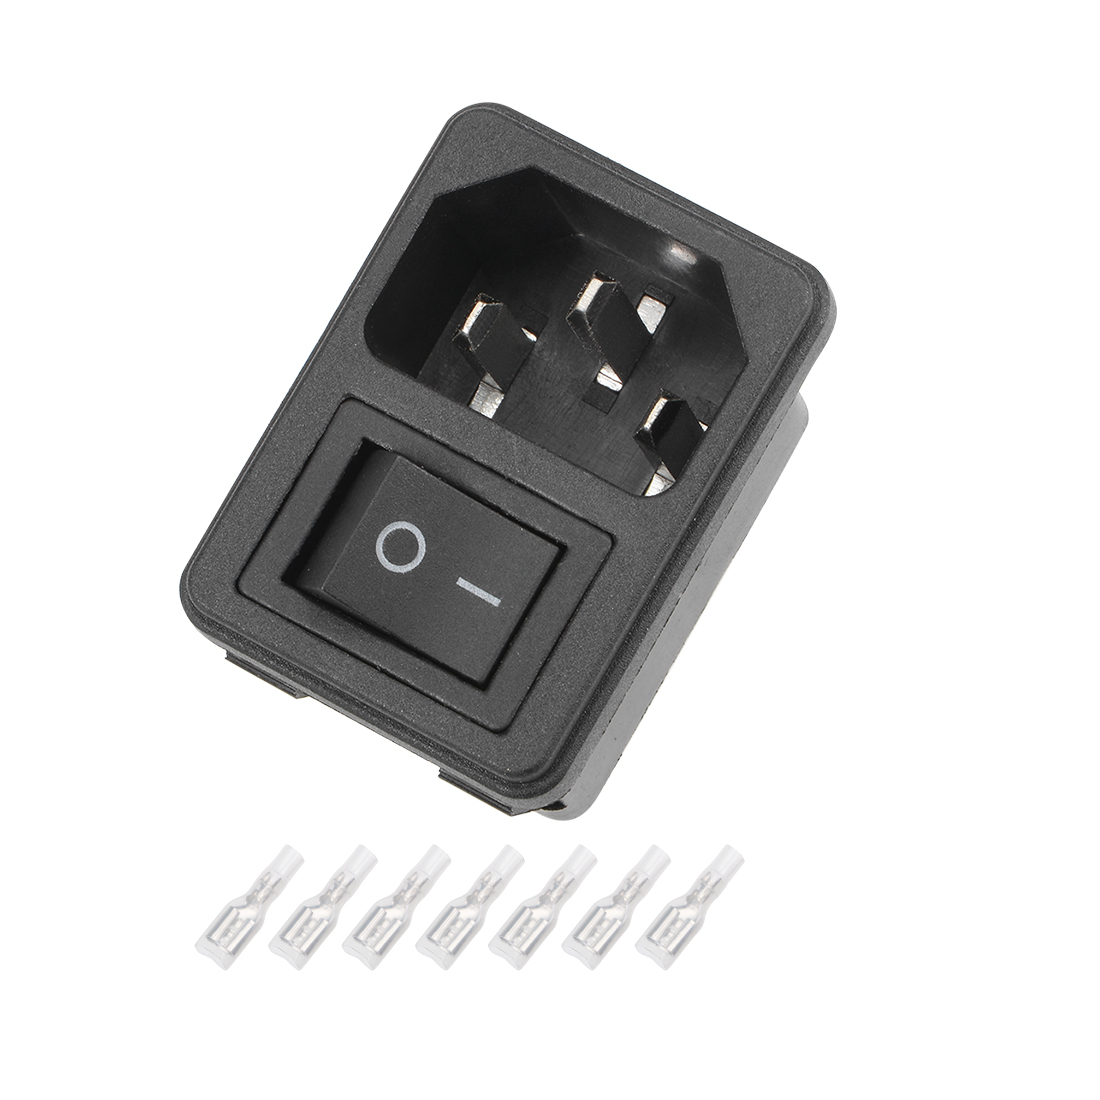 1Set 41x30x28mm Plug 4Pin 2Position Switch with Terminal and Protective Sleeve